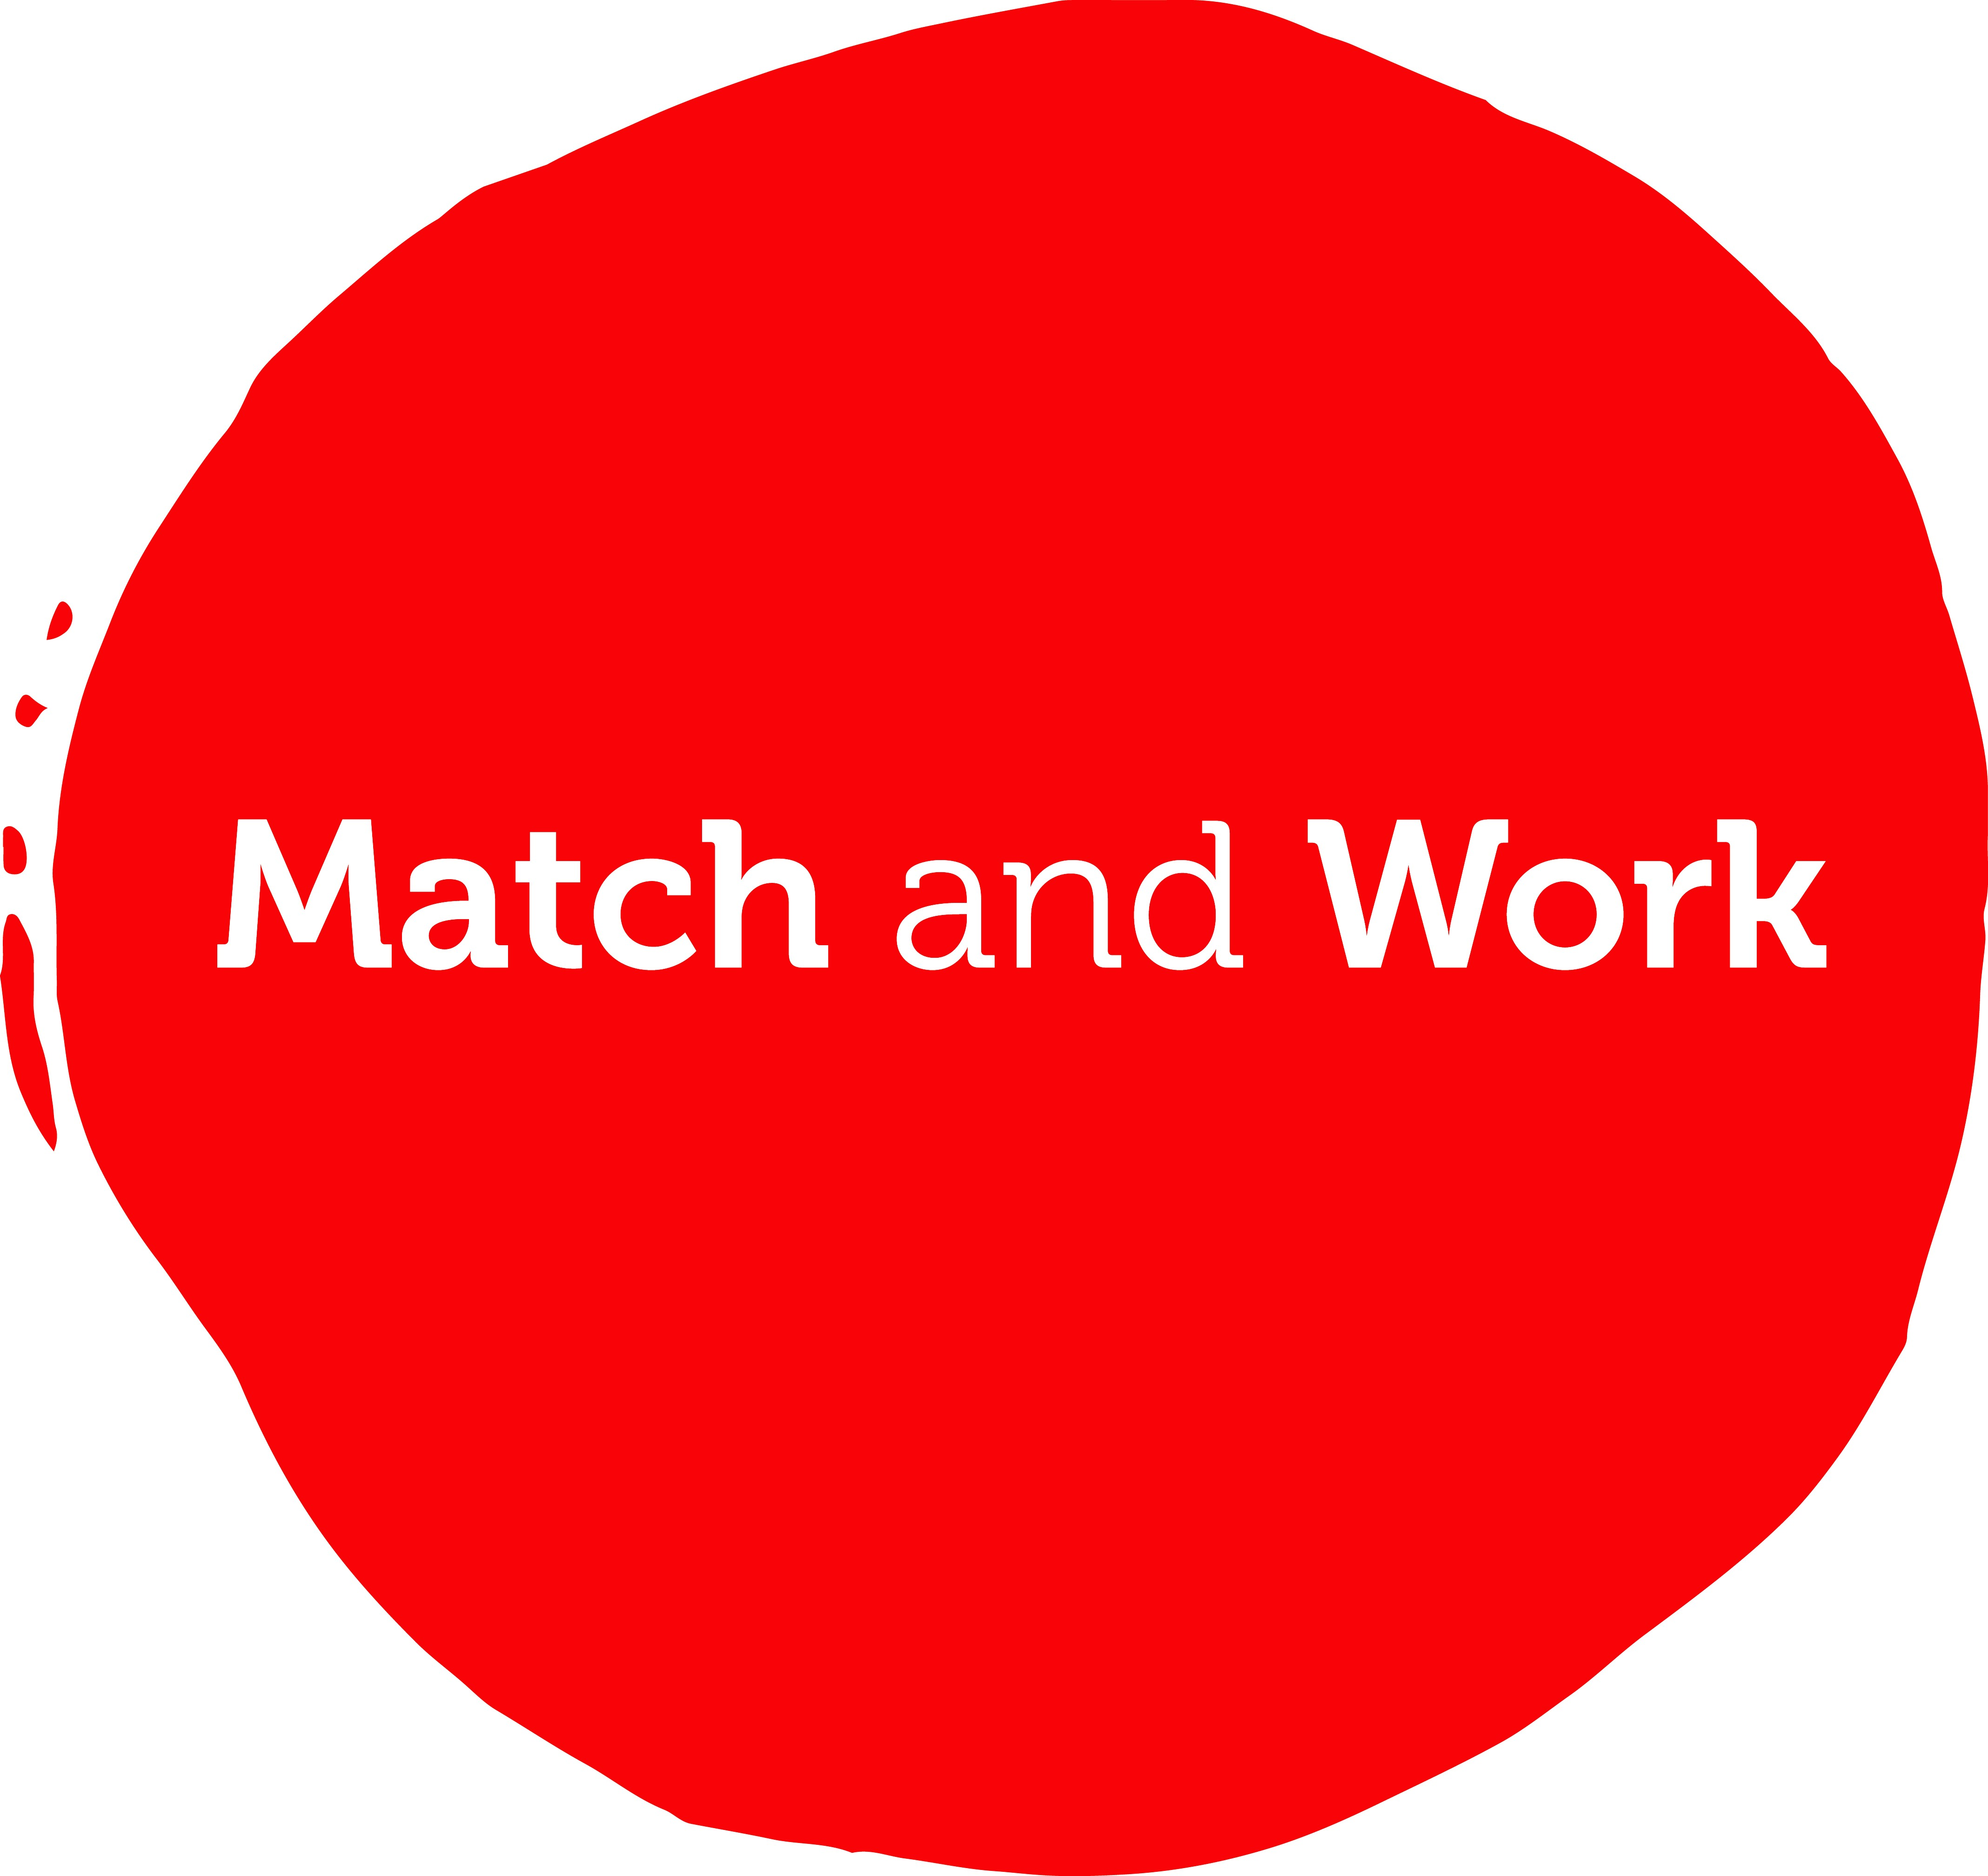 Match and Work